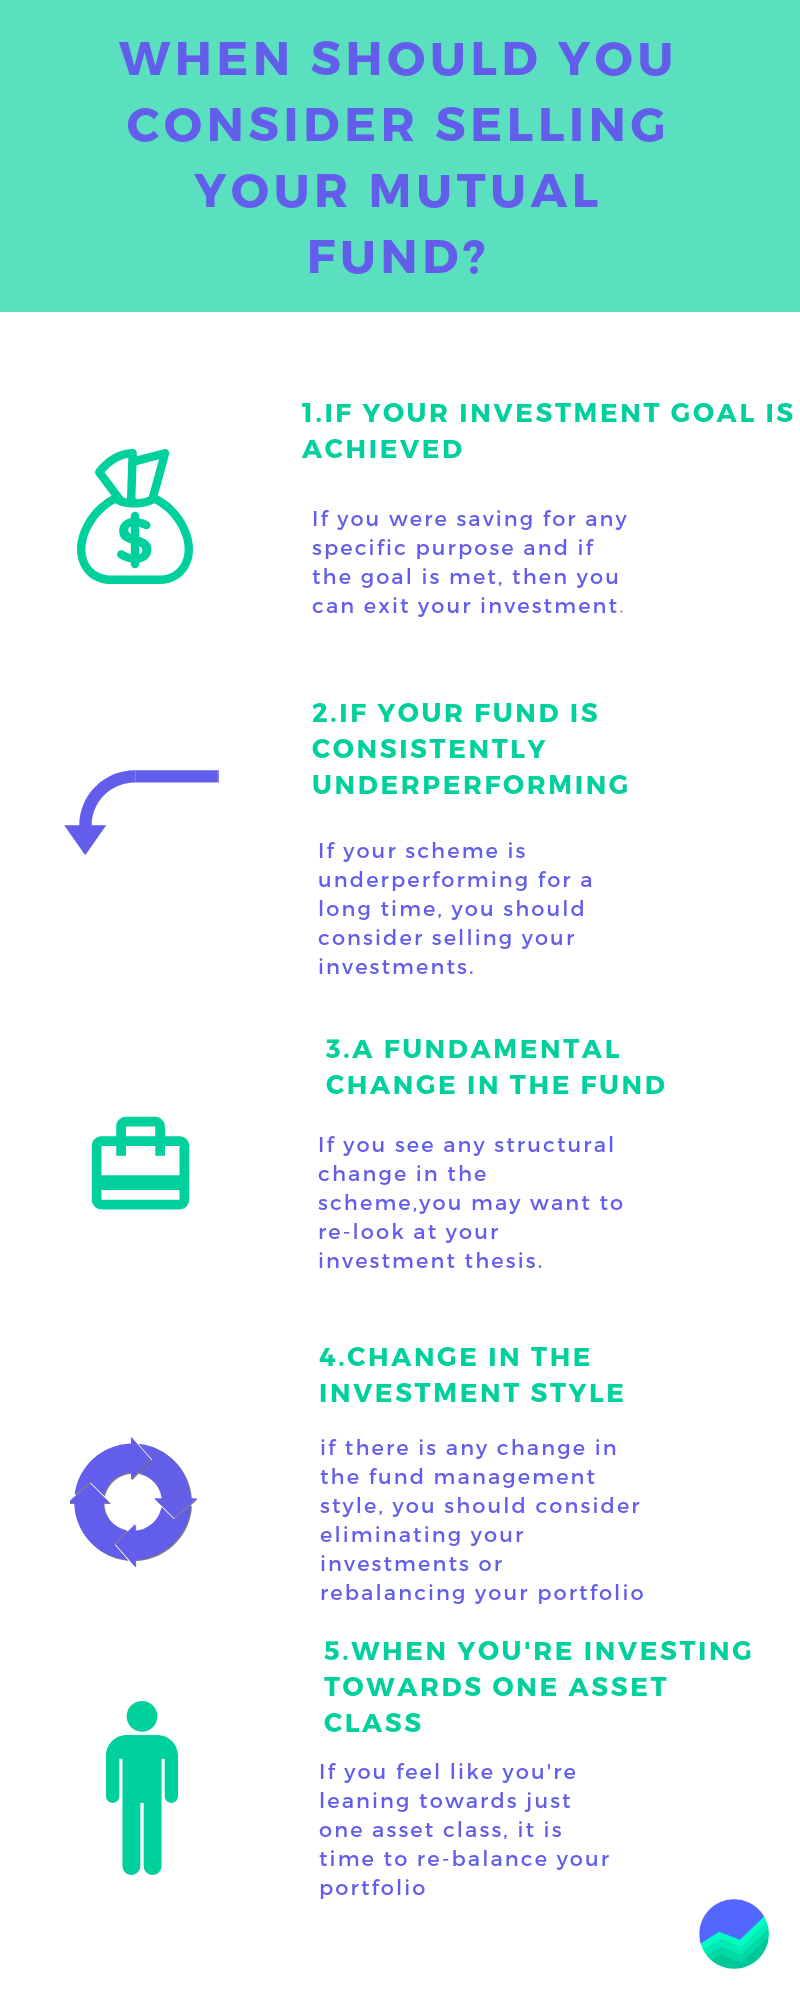 When should you sell your mutual funds?